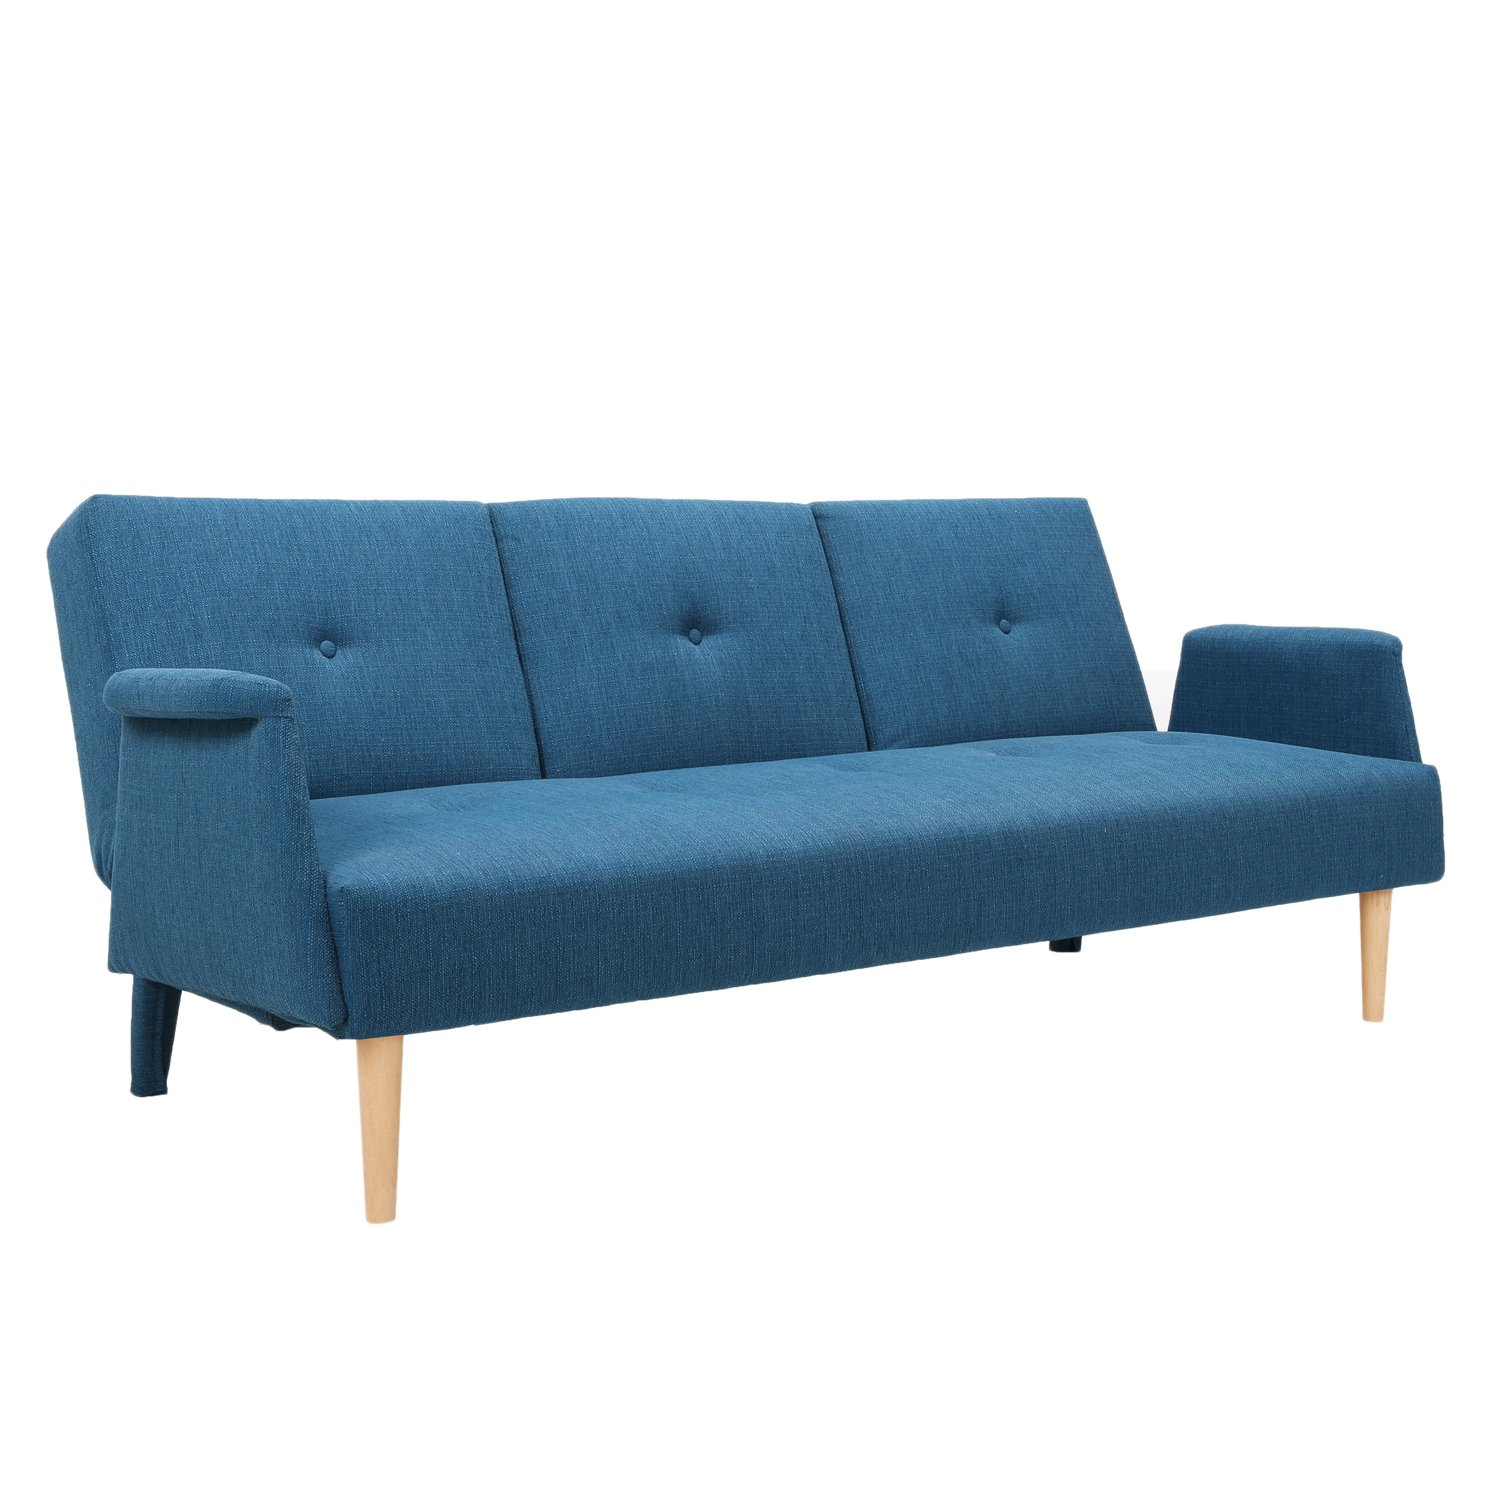 Amazon: Adeco Fabric Fiber Sofa Bed Sofabed Lounge With Arm, Soft  Cushion, Living Room Seat, Wood Legs, Royal Blue: Kitchen & Dining